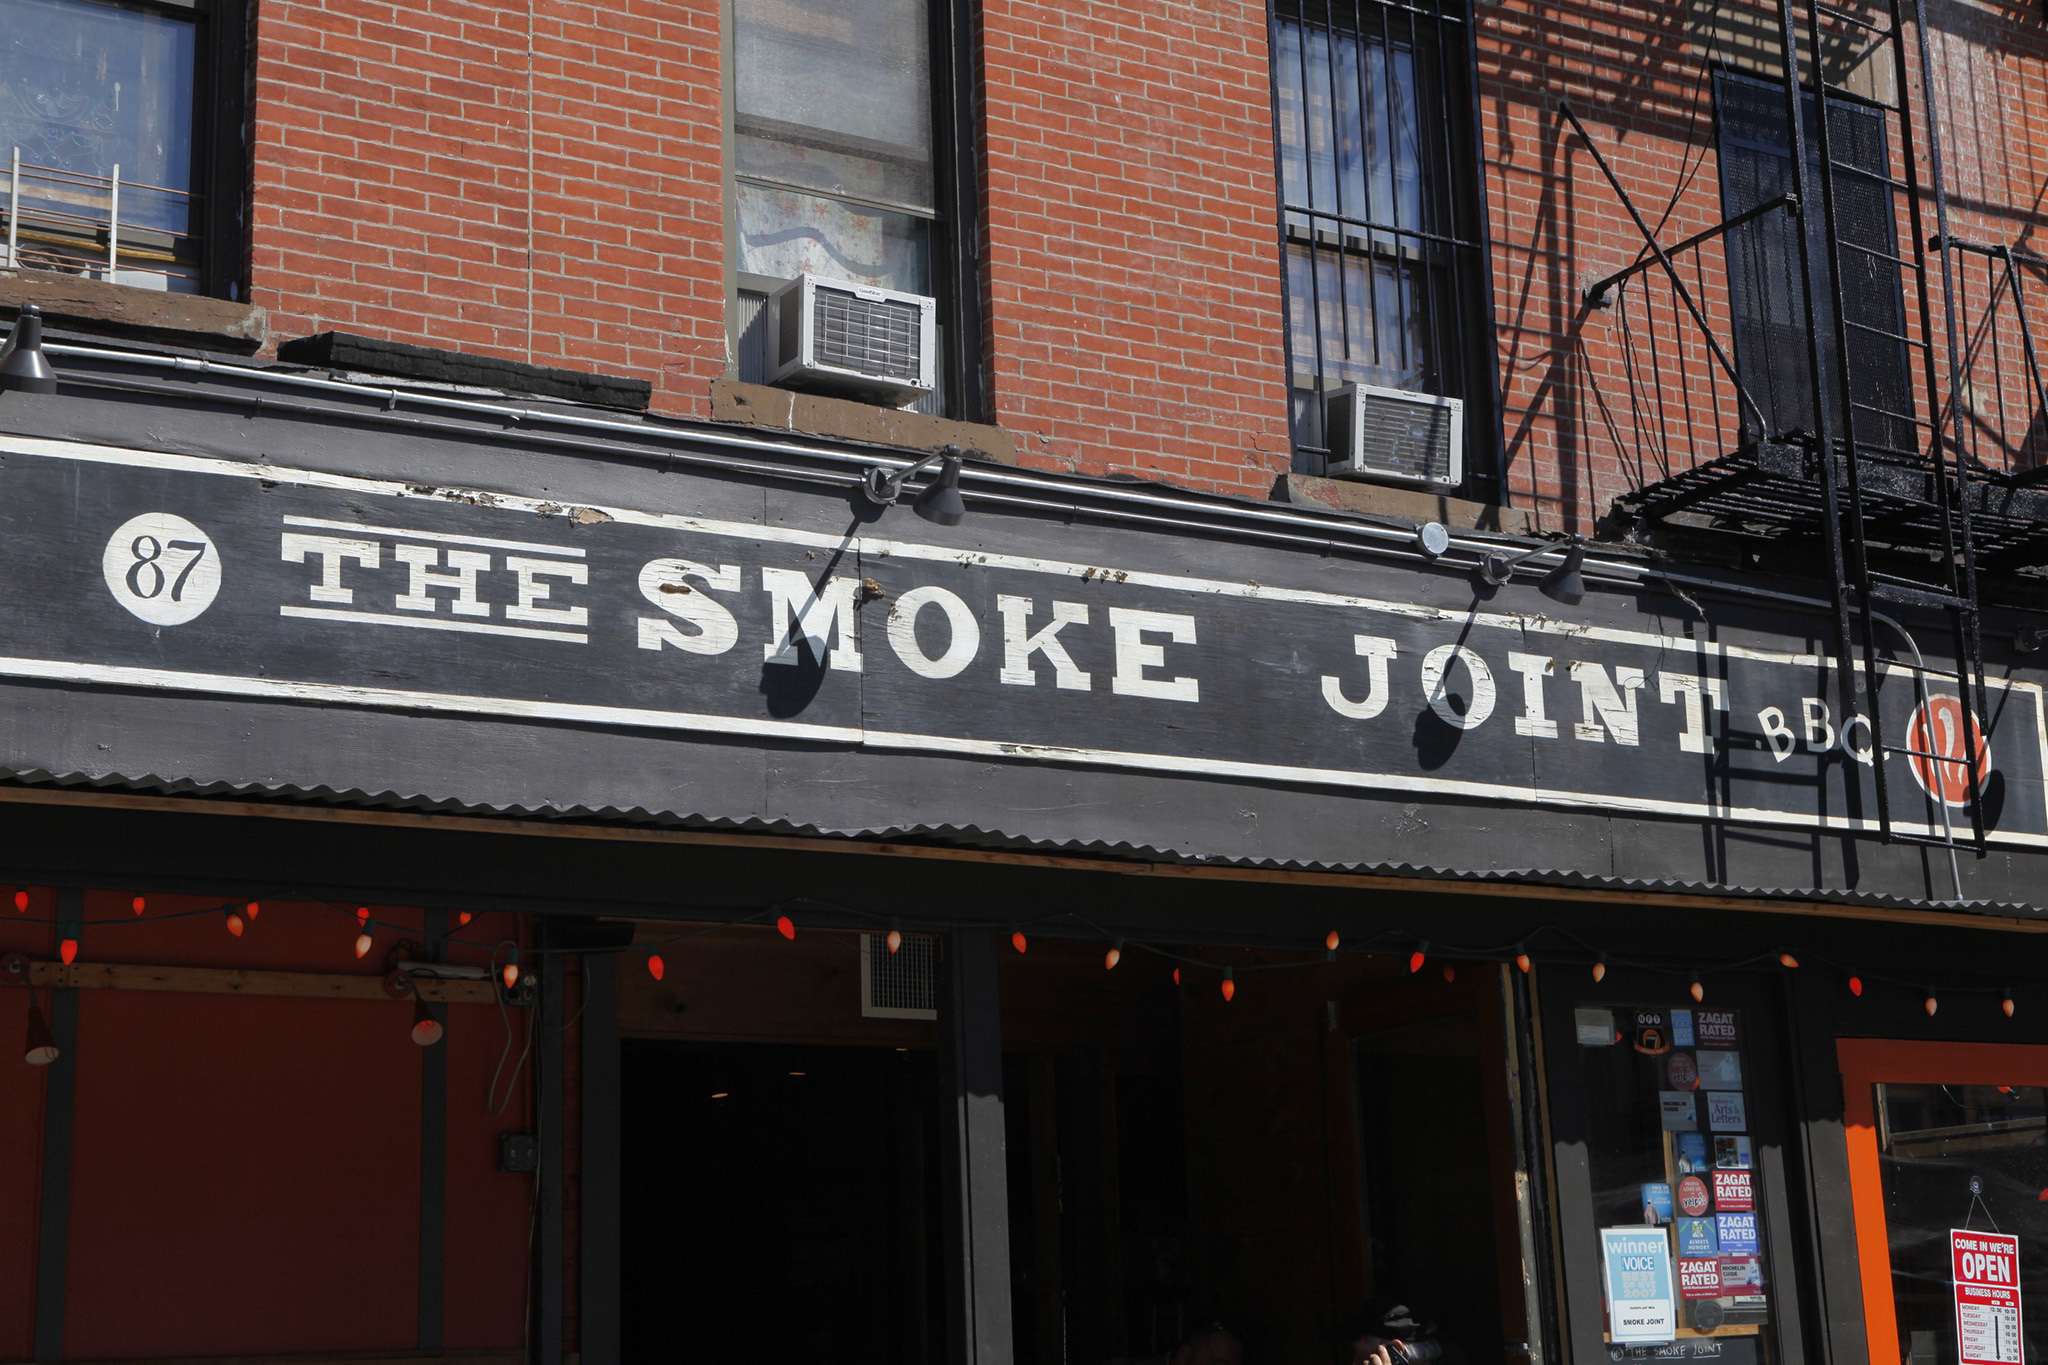 The Smoke Joint